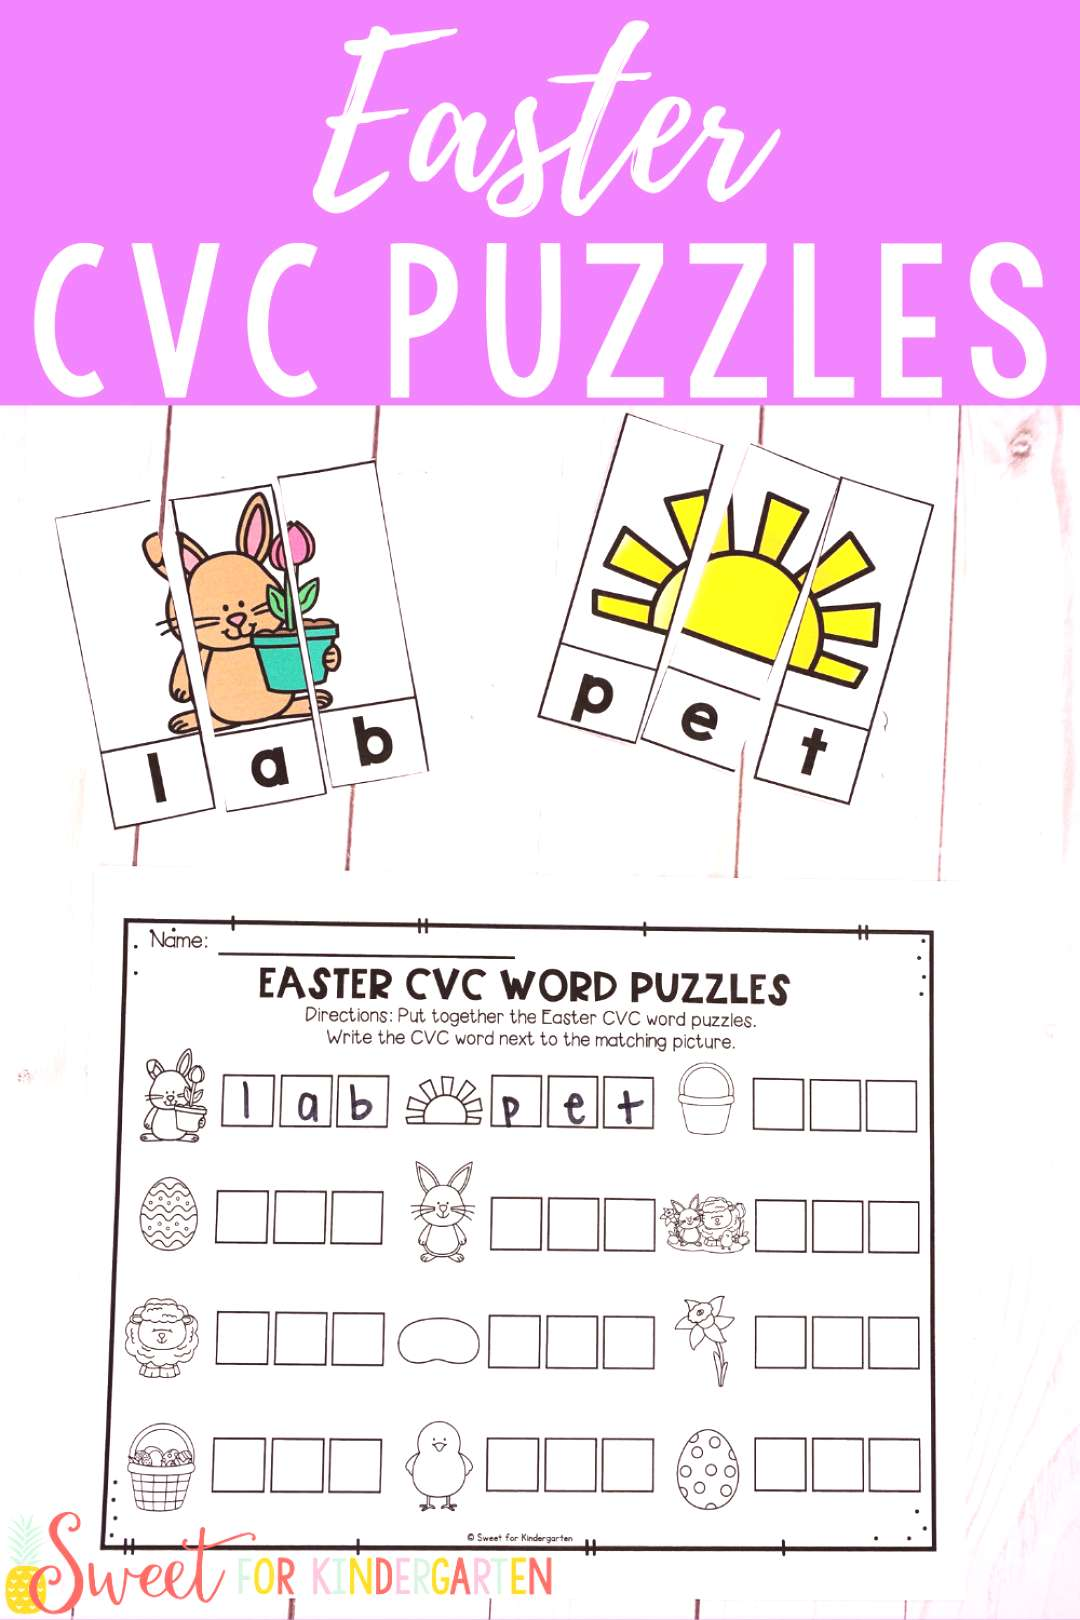 Easter CVC Word Puzzles Looking for a fun Kindergarten Easter activity? This literacy center focuse